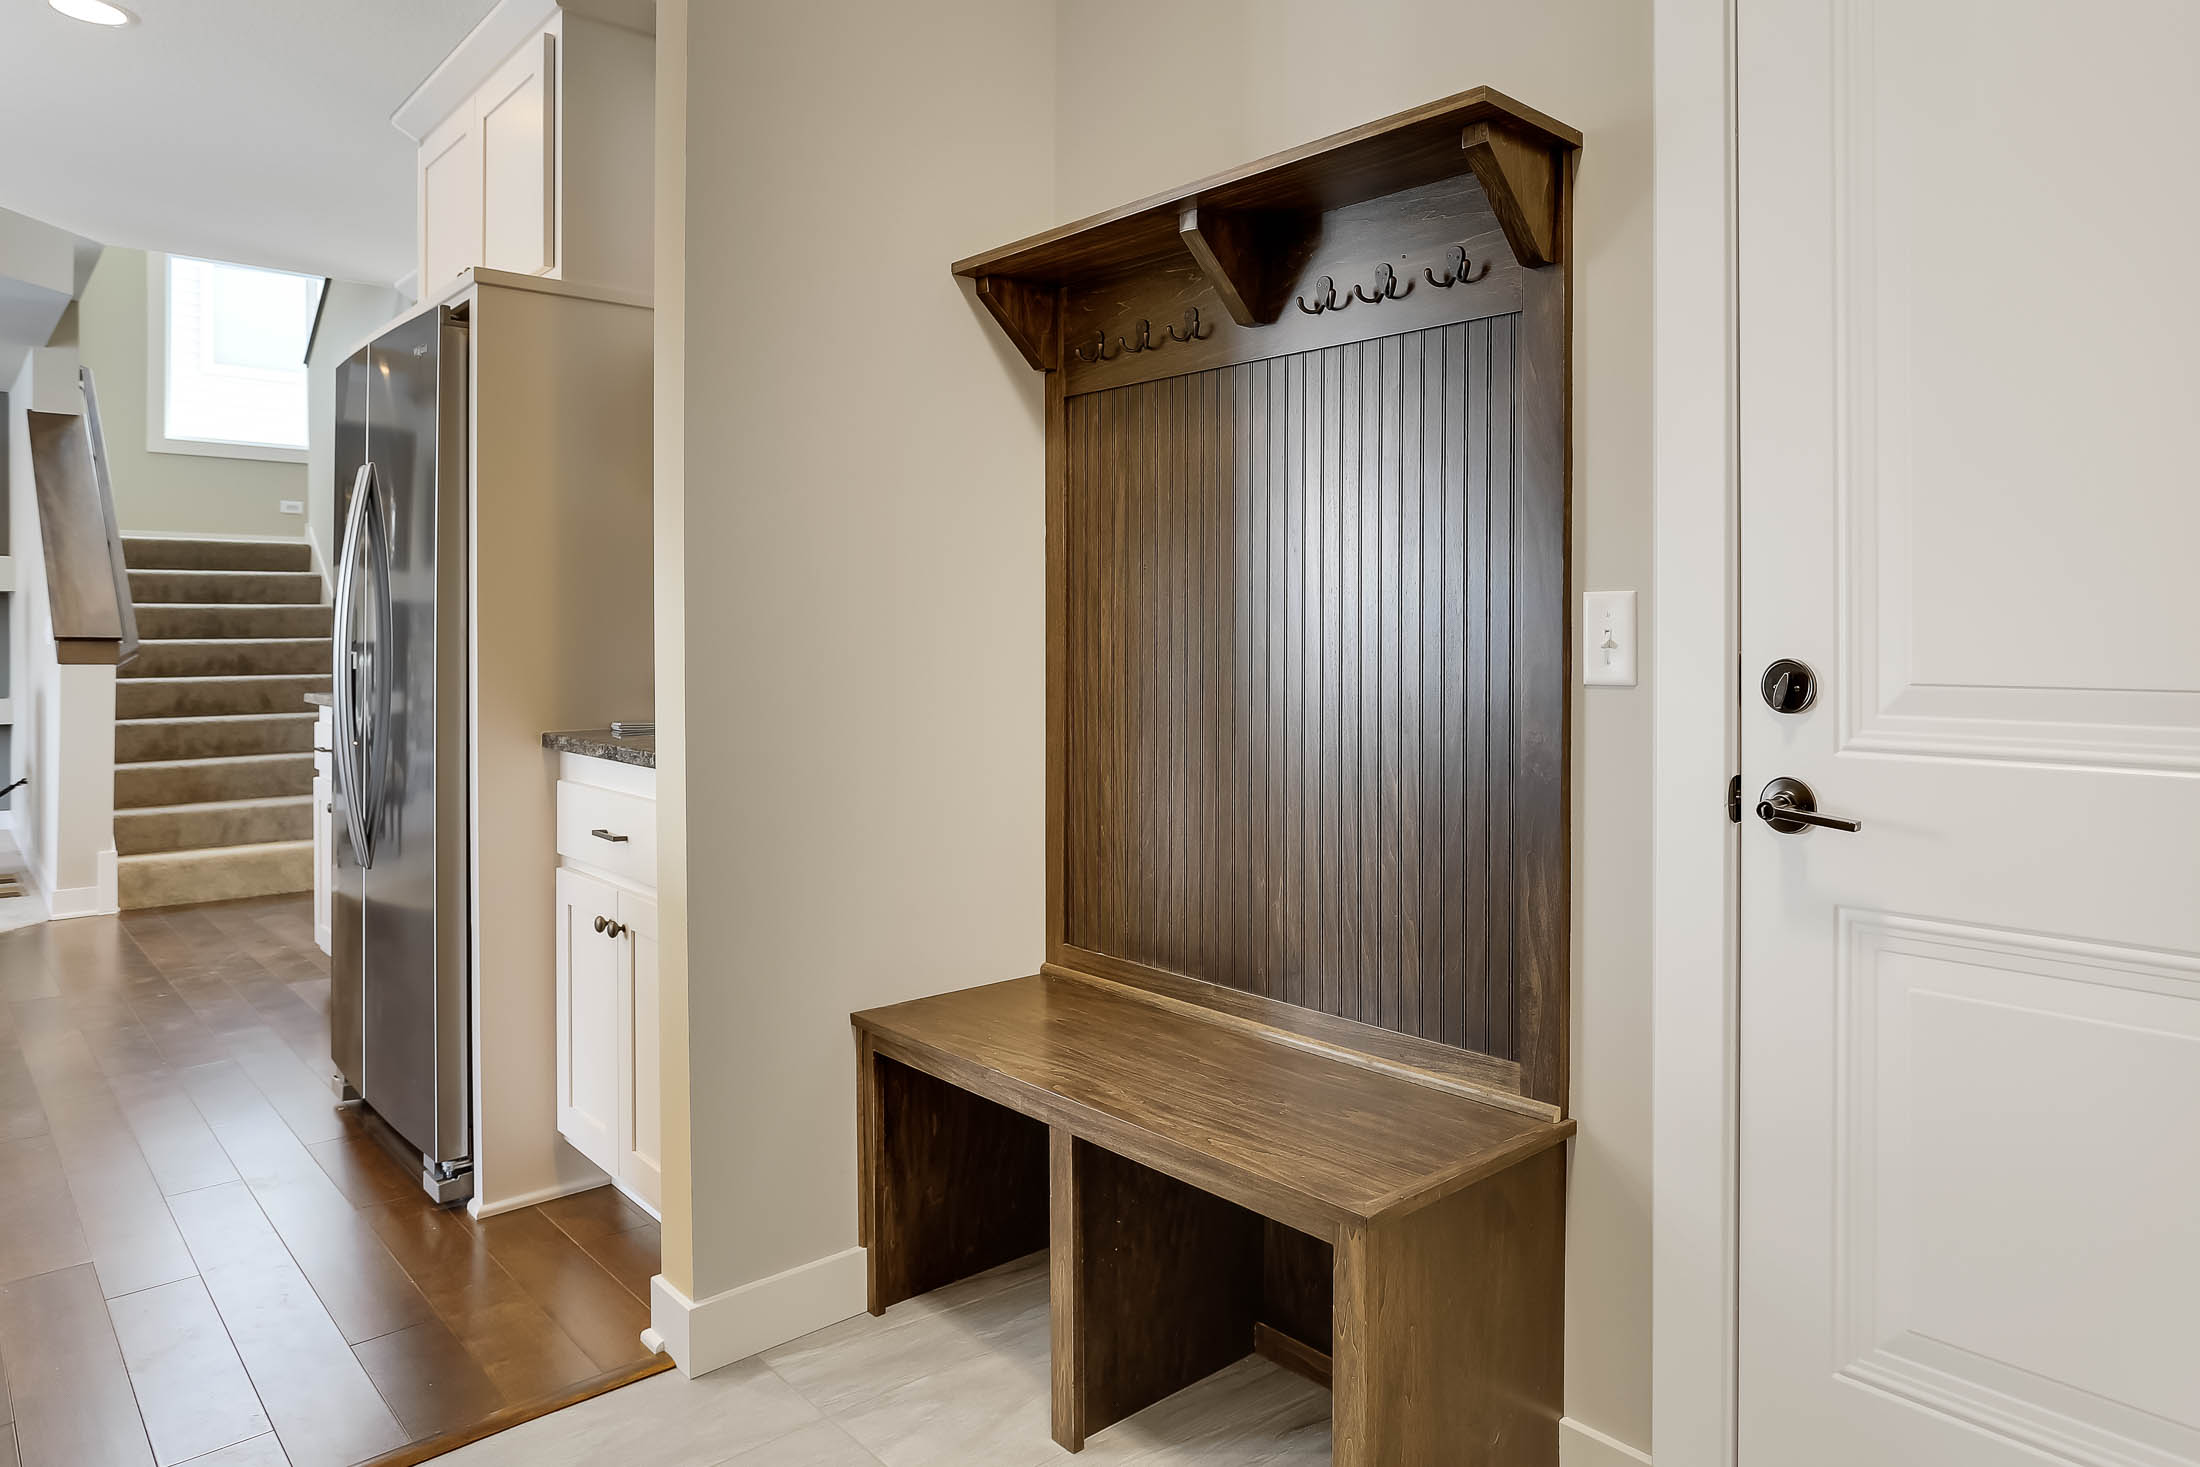 The Mud Room features a large walk-in closet and a Built in Bench with hanging hooks